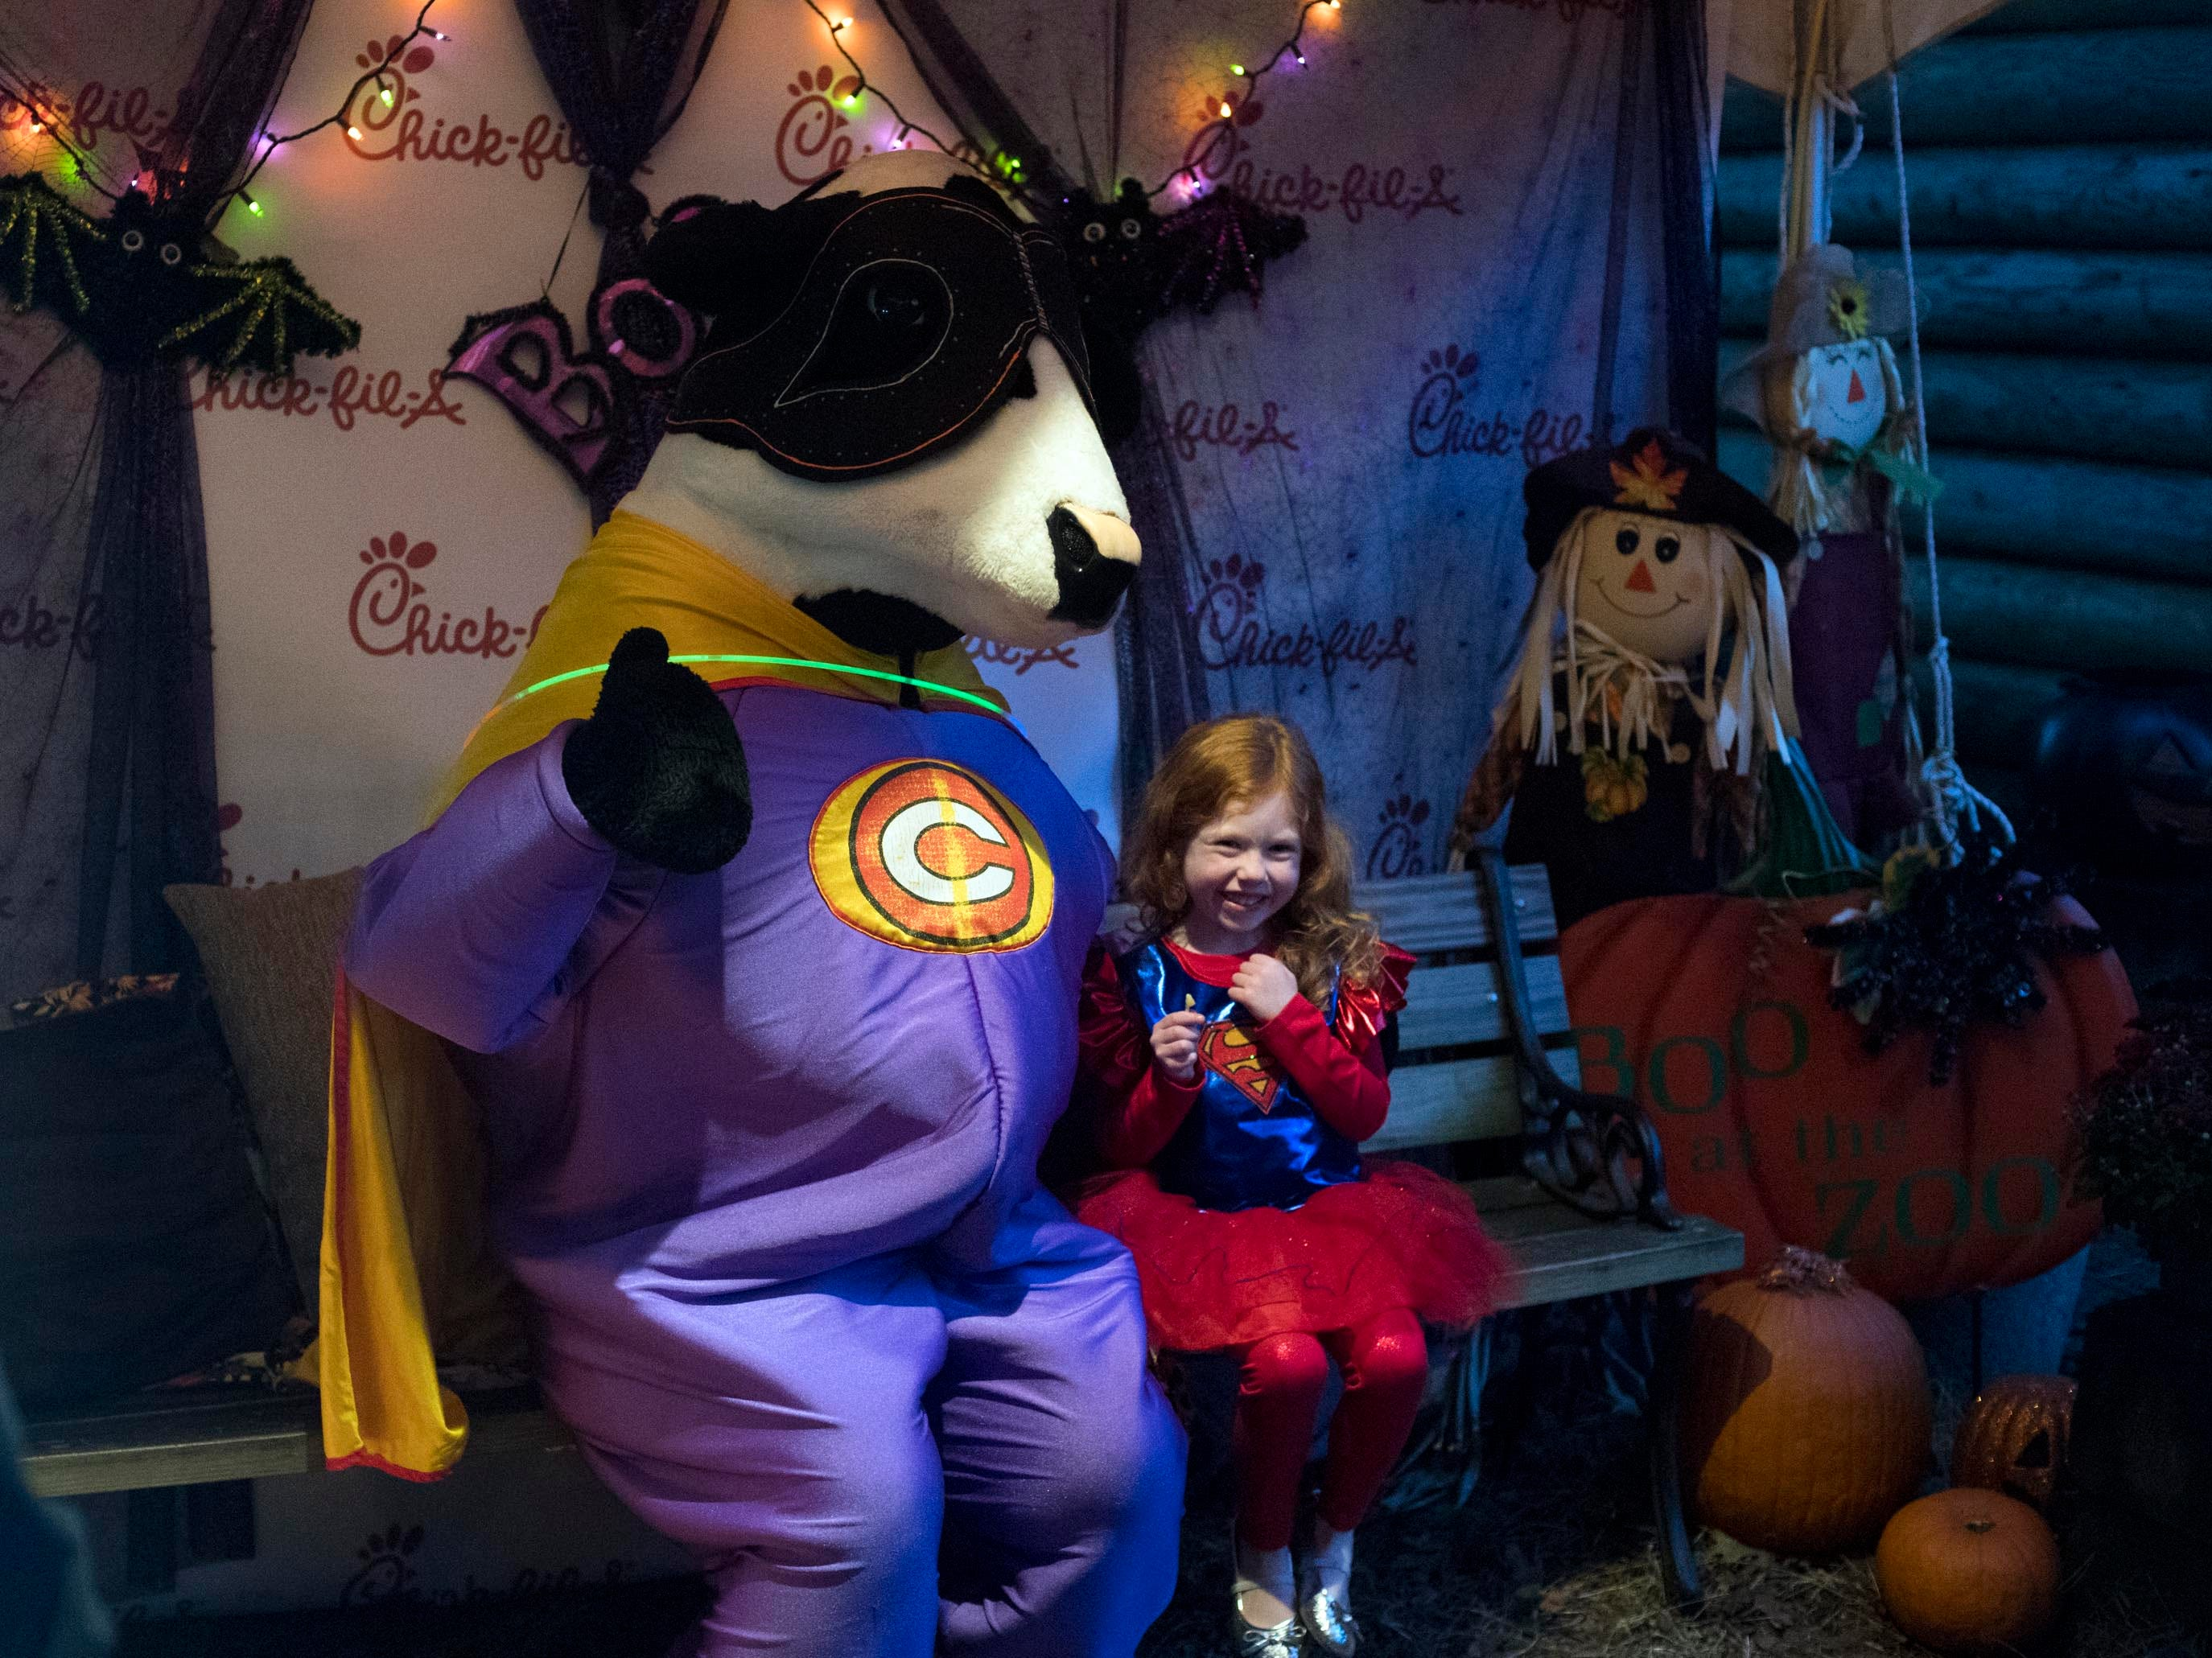 The Chick-fil-a mascot at super girl sit together for a photographer during Zoo Knoxville's Boo! at the Zoo presented on Saturday, October 20, 2018.